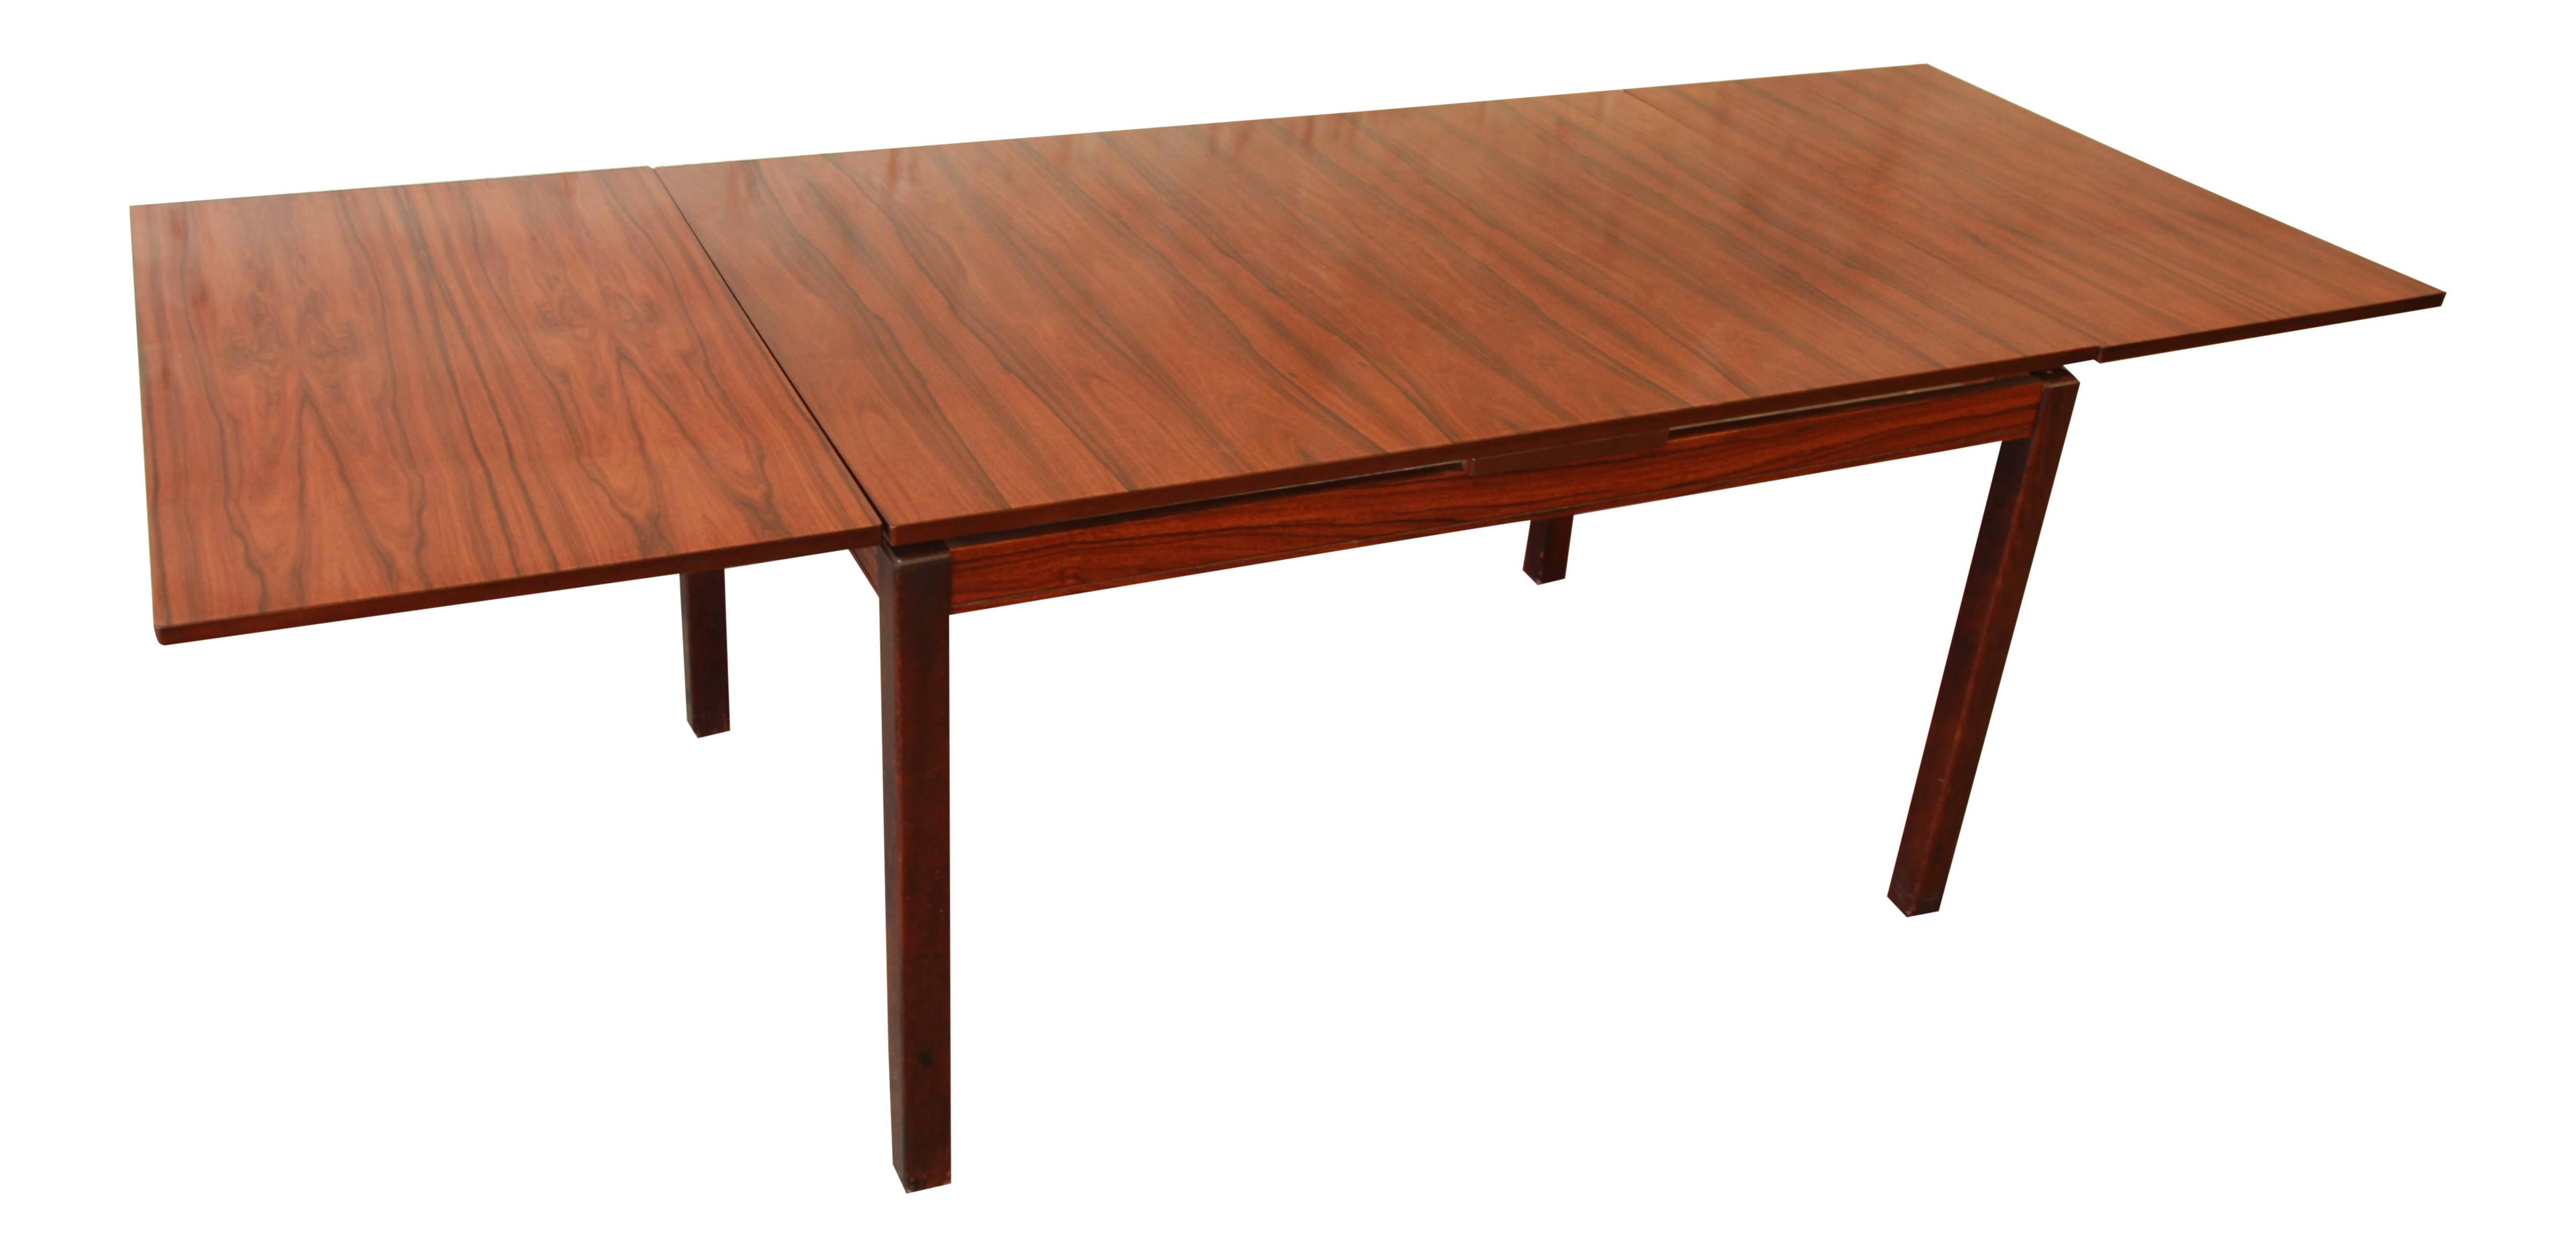 Rosewood Dining Table Norwegian Rosewood Dining Table By Heggen Chairish